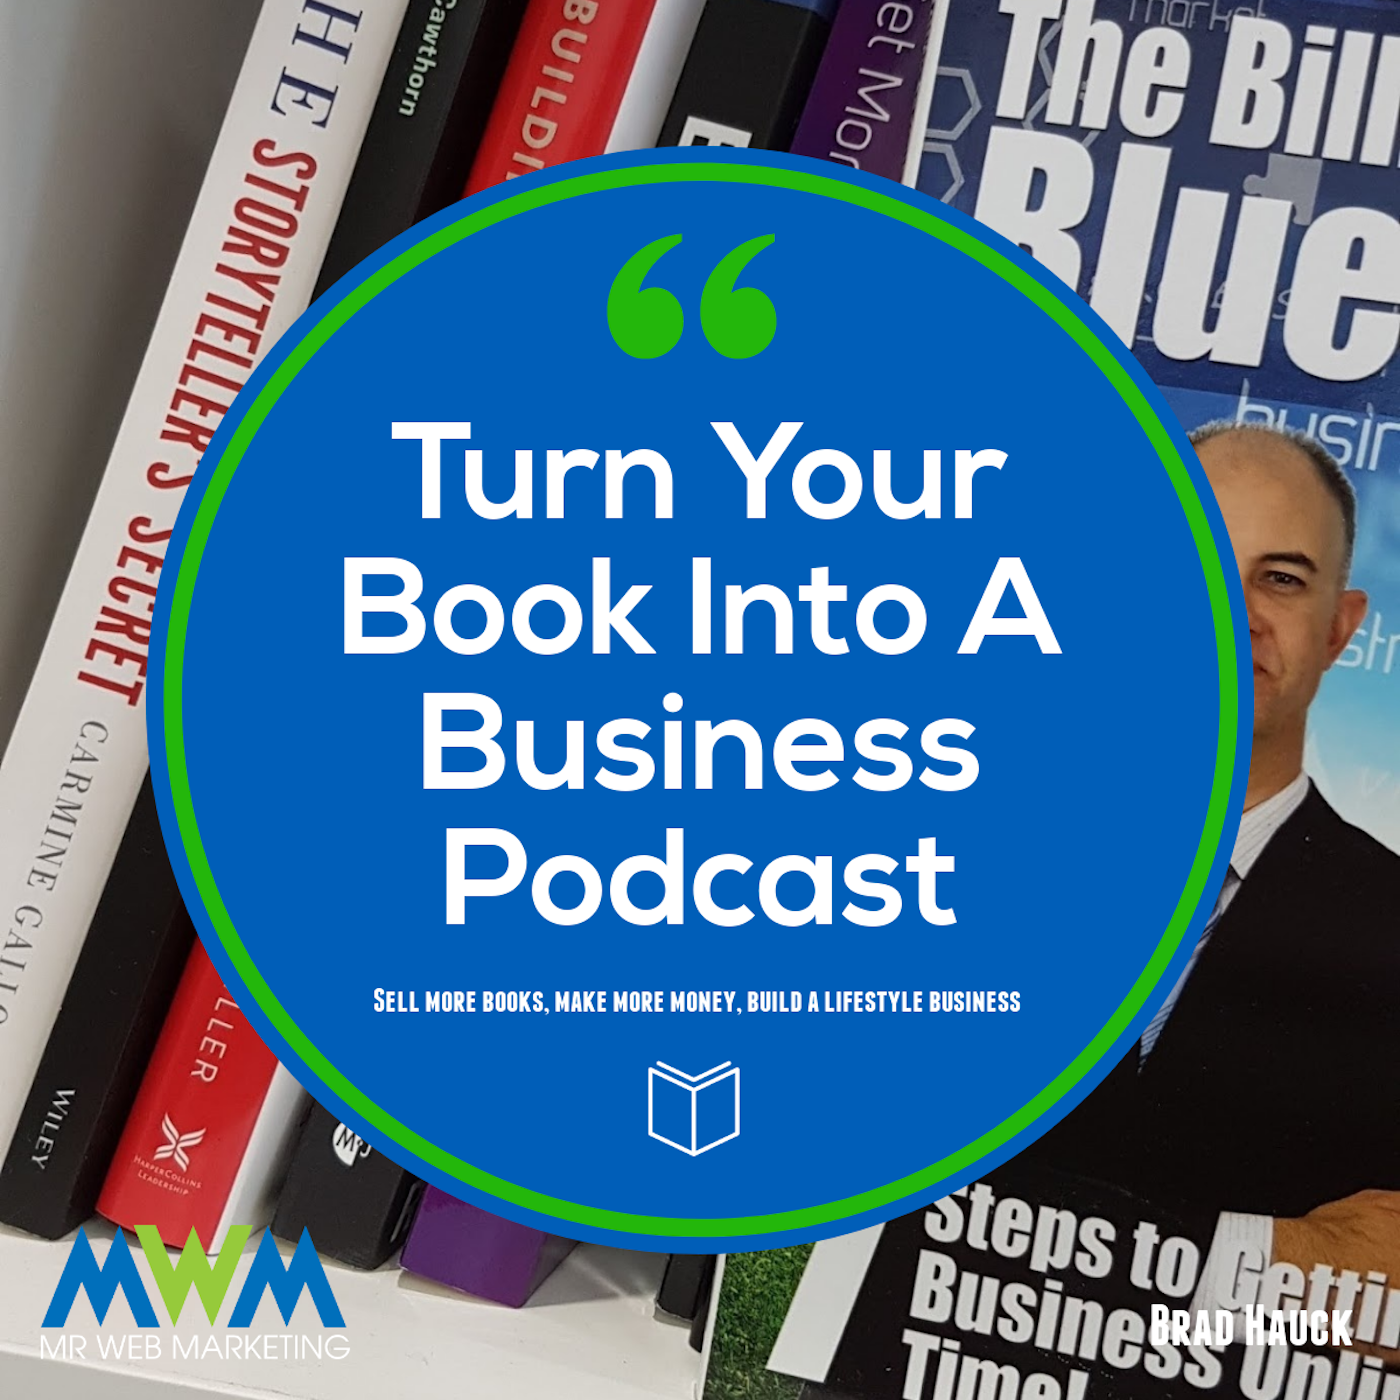 Episode 1: Turn Your Book Into A Business Podcast